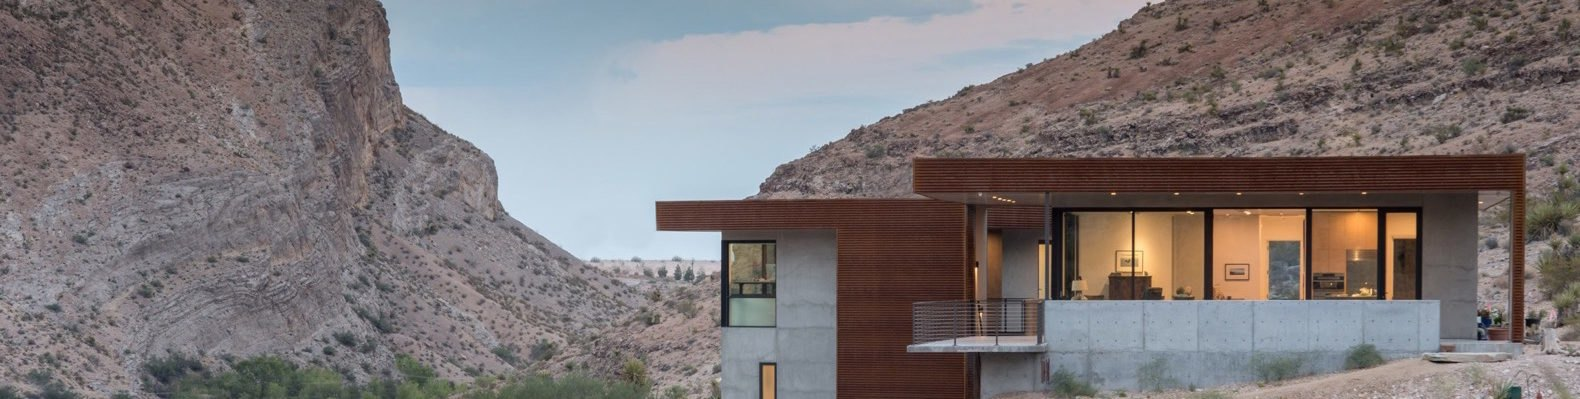 concrete and weathered steel home in a desert landscape